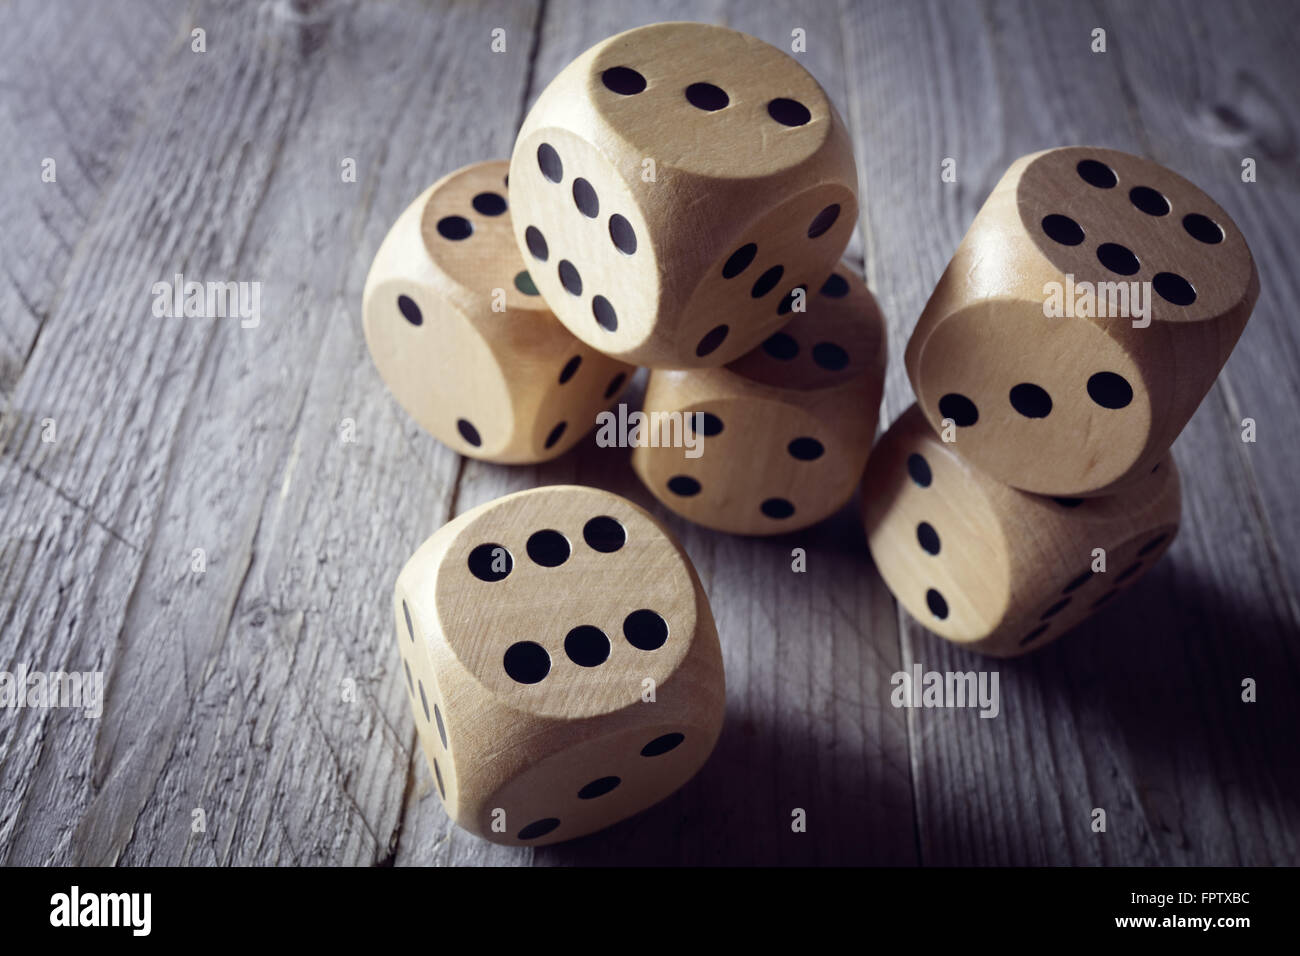 Rolling the dice concept for business risk, chance, good luck or gambling - Stock Image